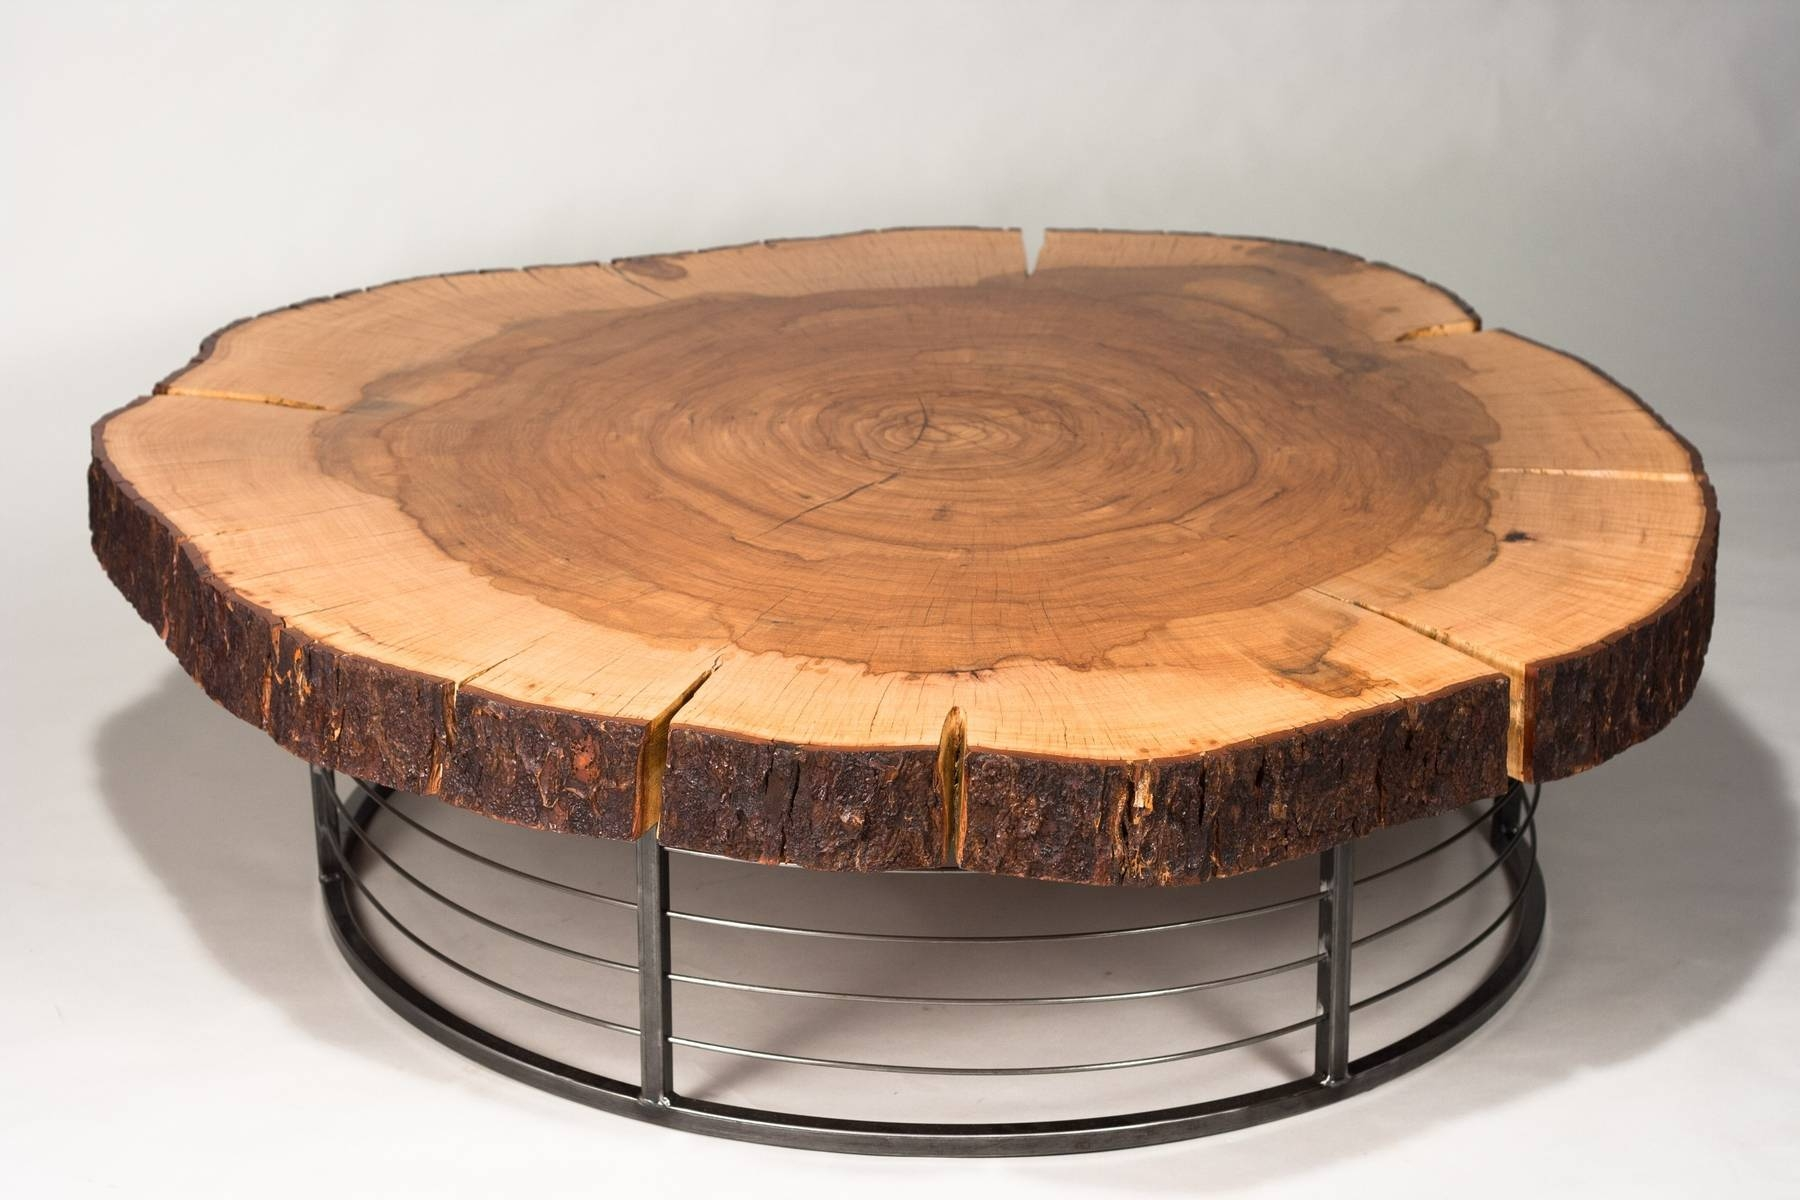 Antique Tree Trunks Coffee Table : Guideline To Make A Coffee with regard to Wooden Trunks Coffee Tables (Image 2 of 30)